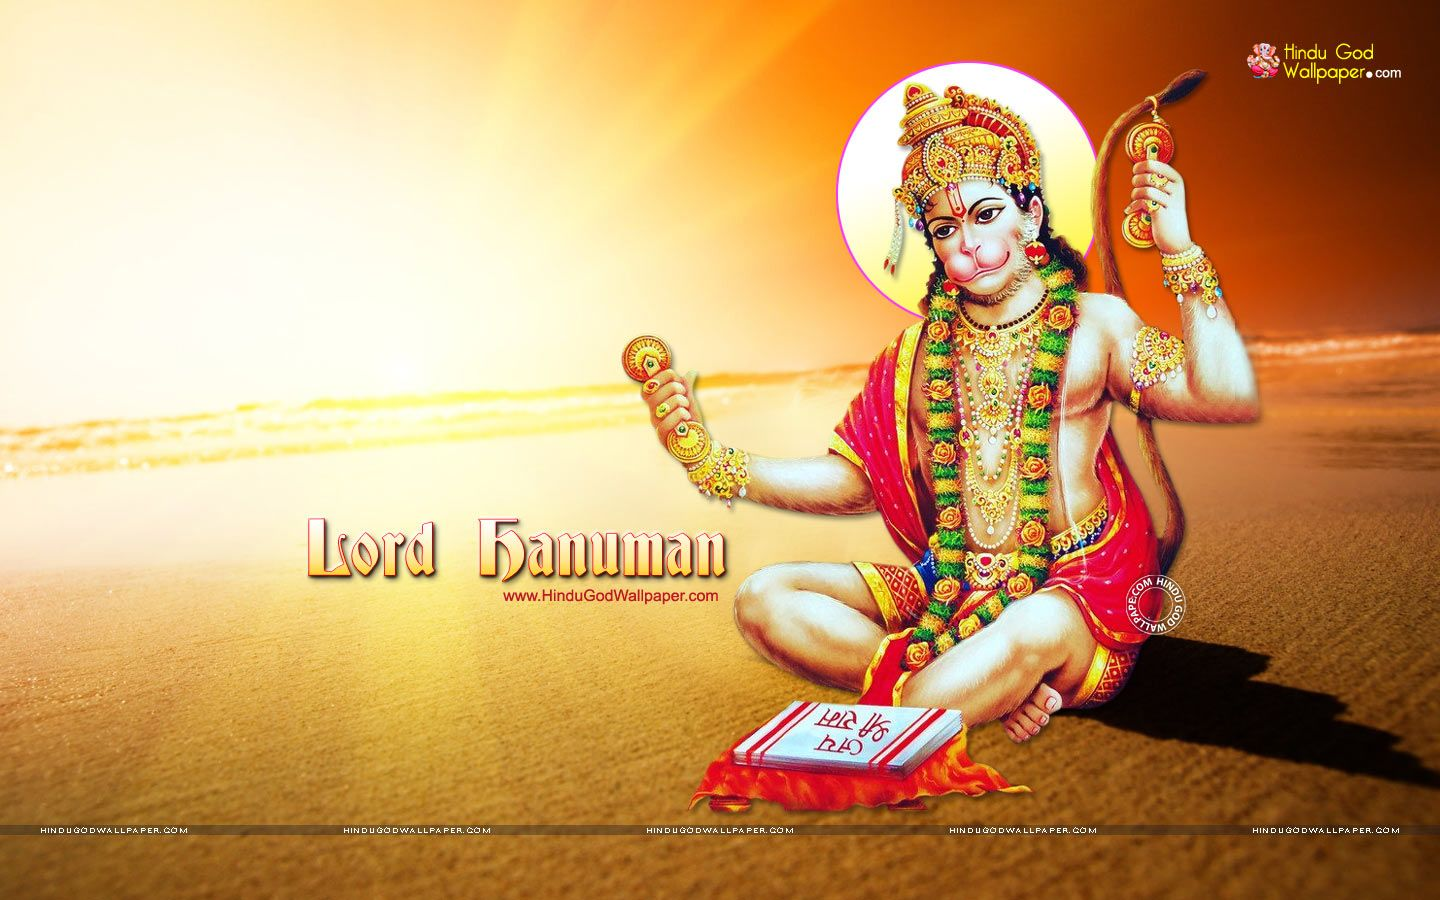 hanuman wallpaper hd lord hanuman wallpapers pinterest